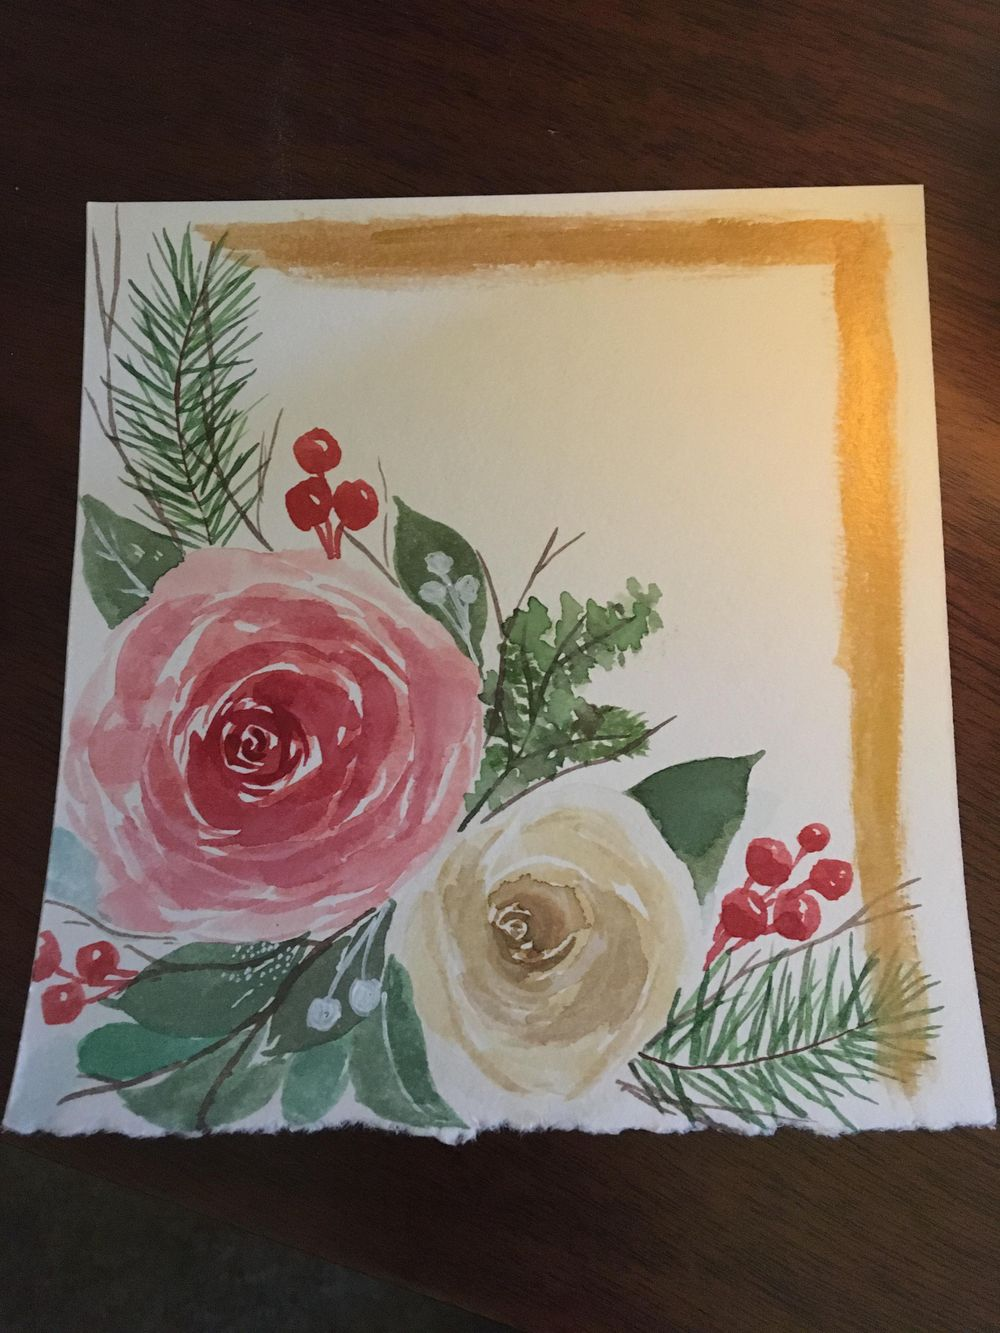 Holiday Painting - image 1 - student project